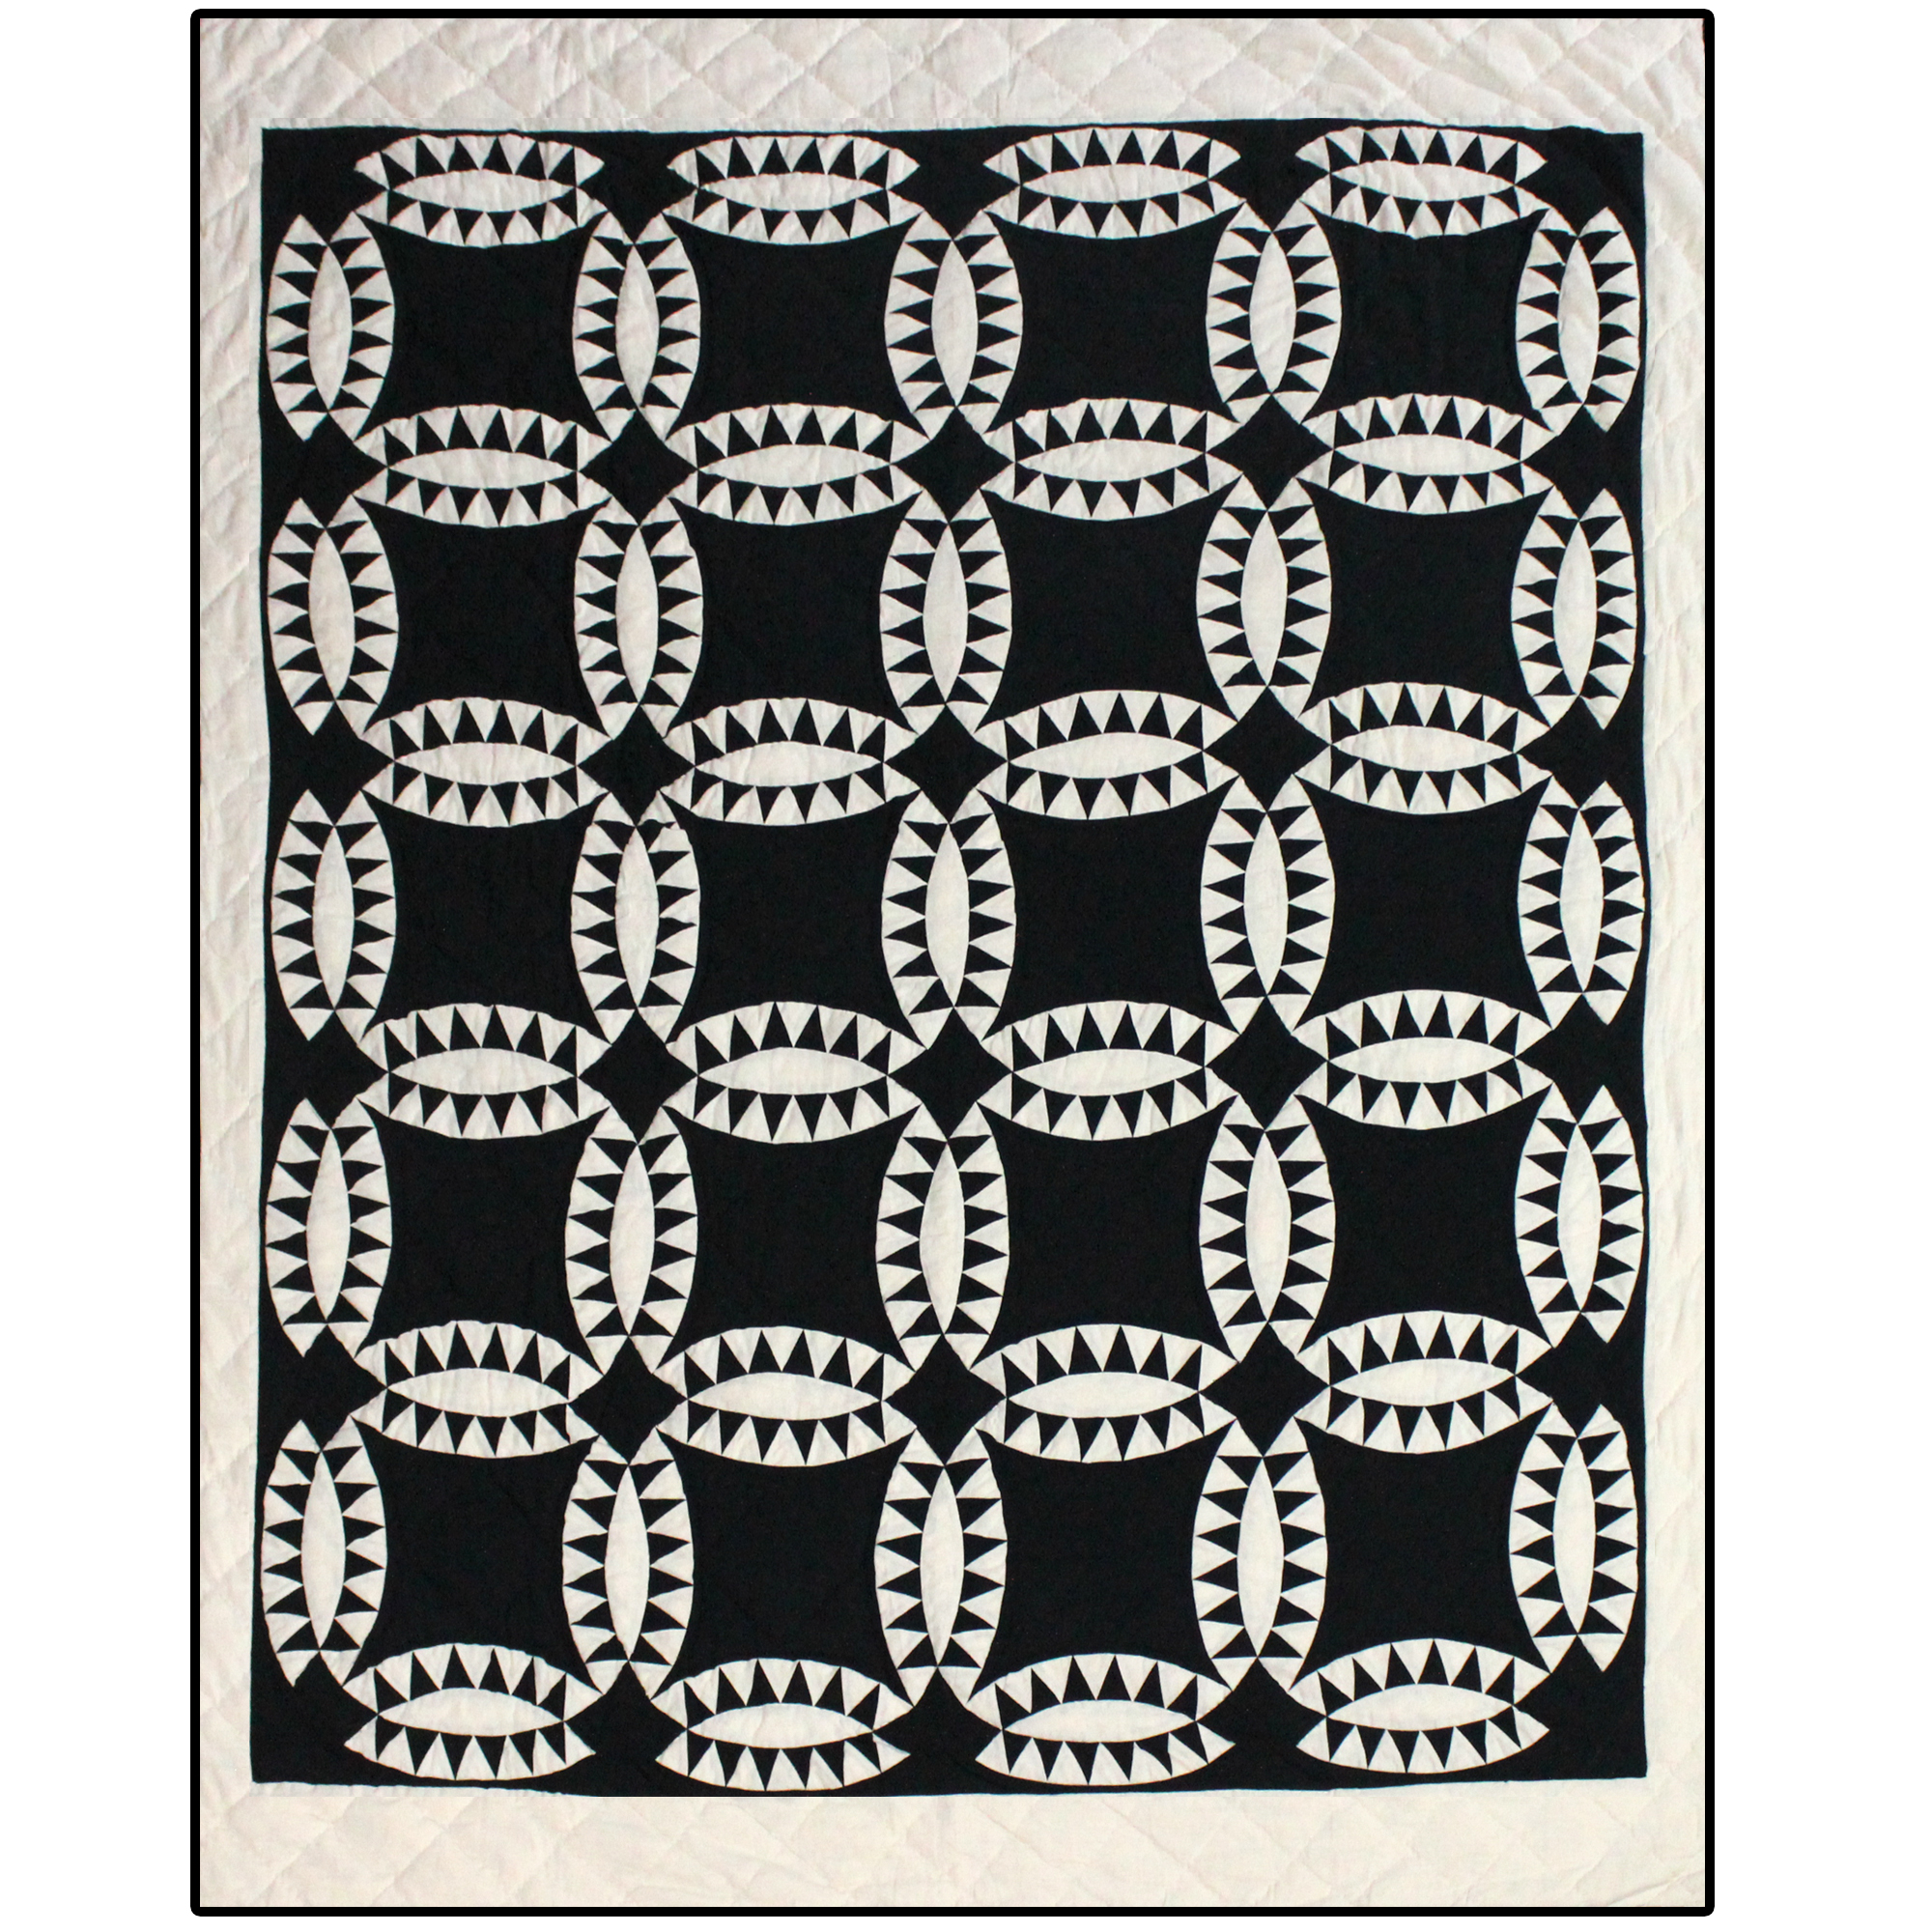 "Black and WhiteWedding Ring Super Queen Quilt 92""W x 96""L"